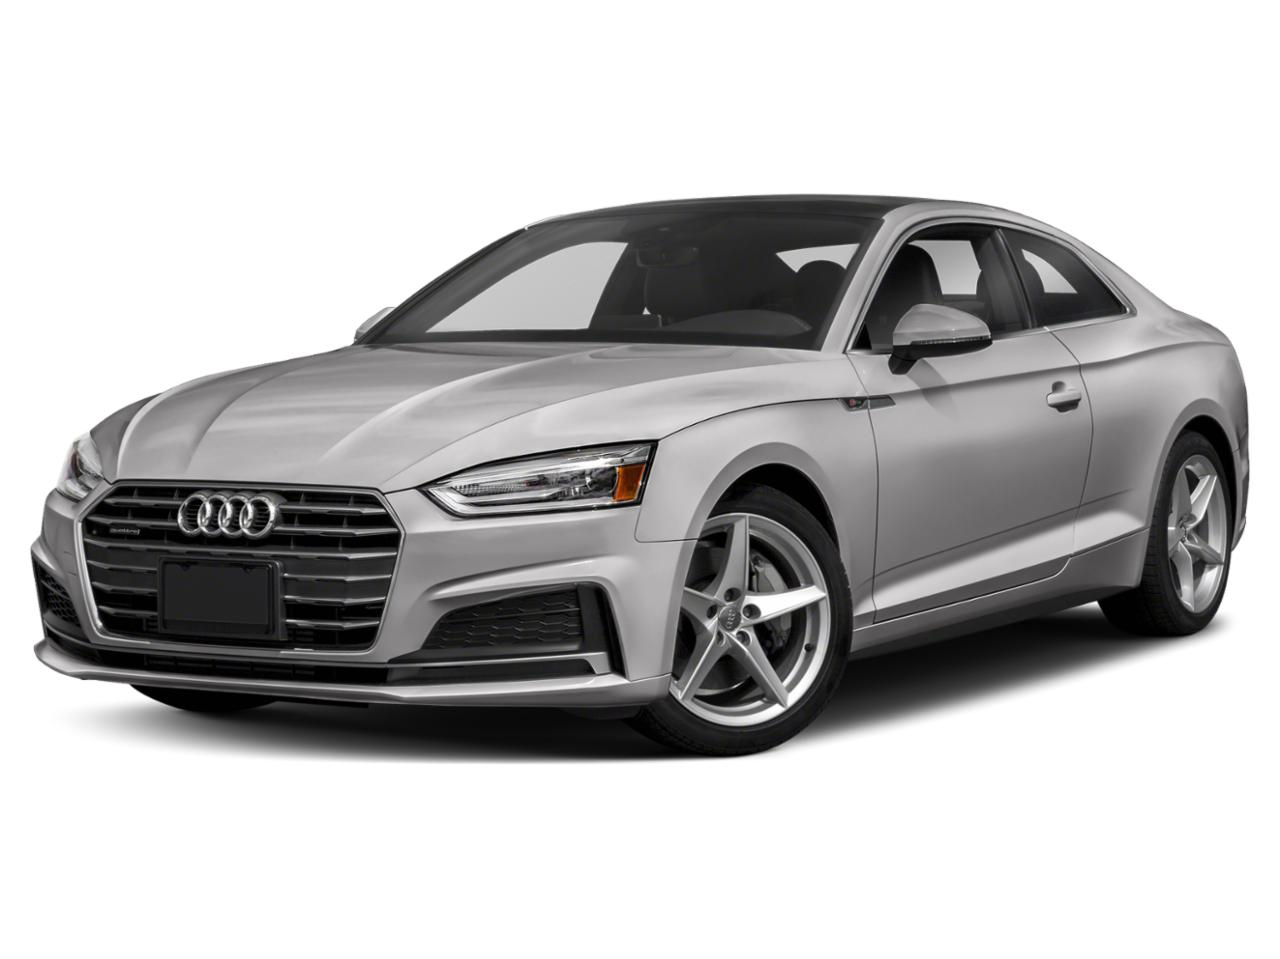 2018 Audi A5 Coupe Vehicle Photo in Portland, OR 97225